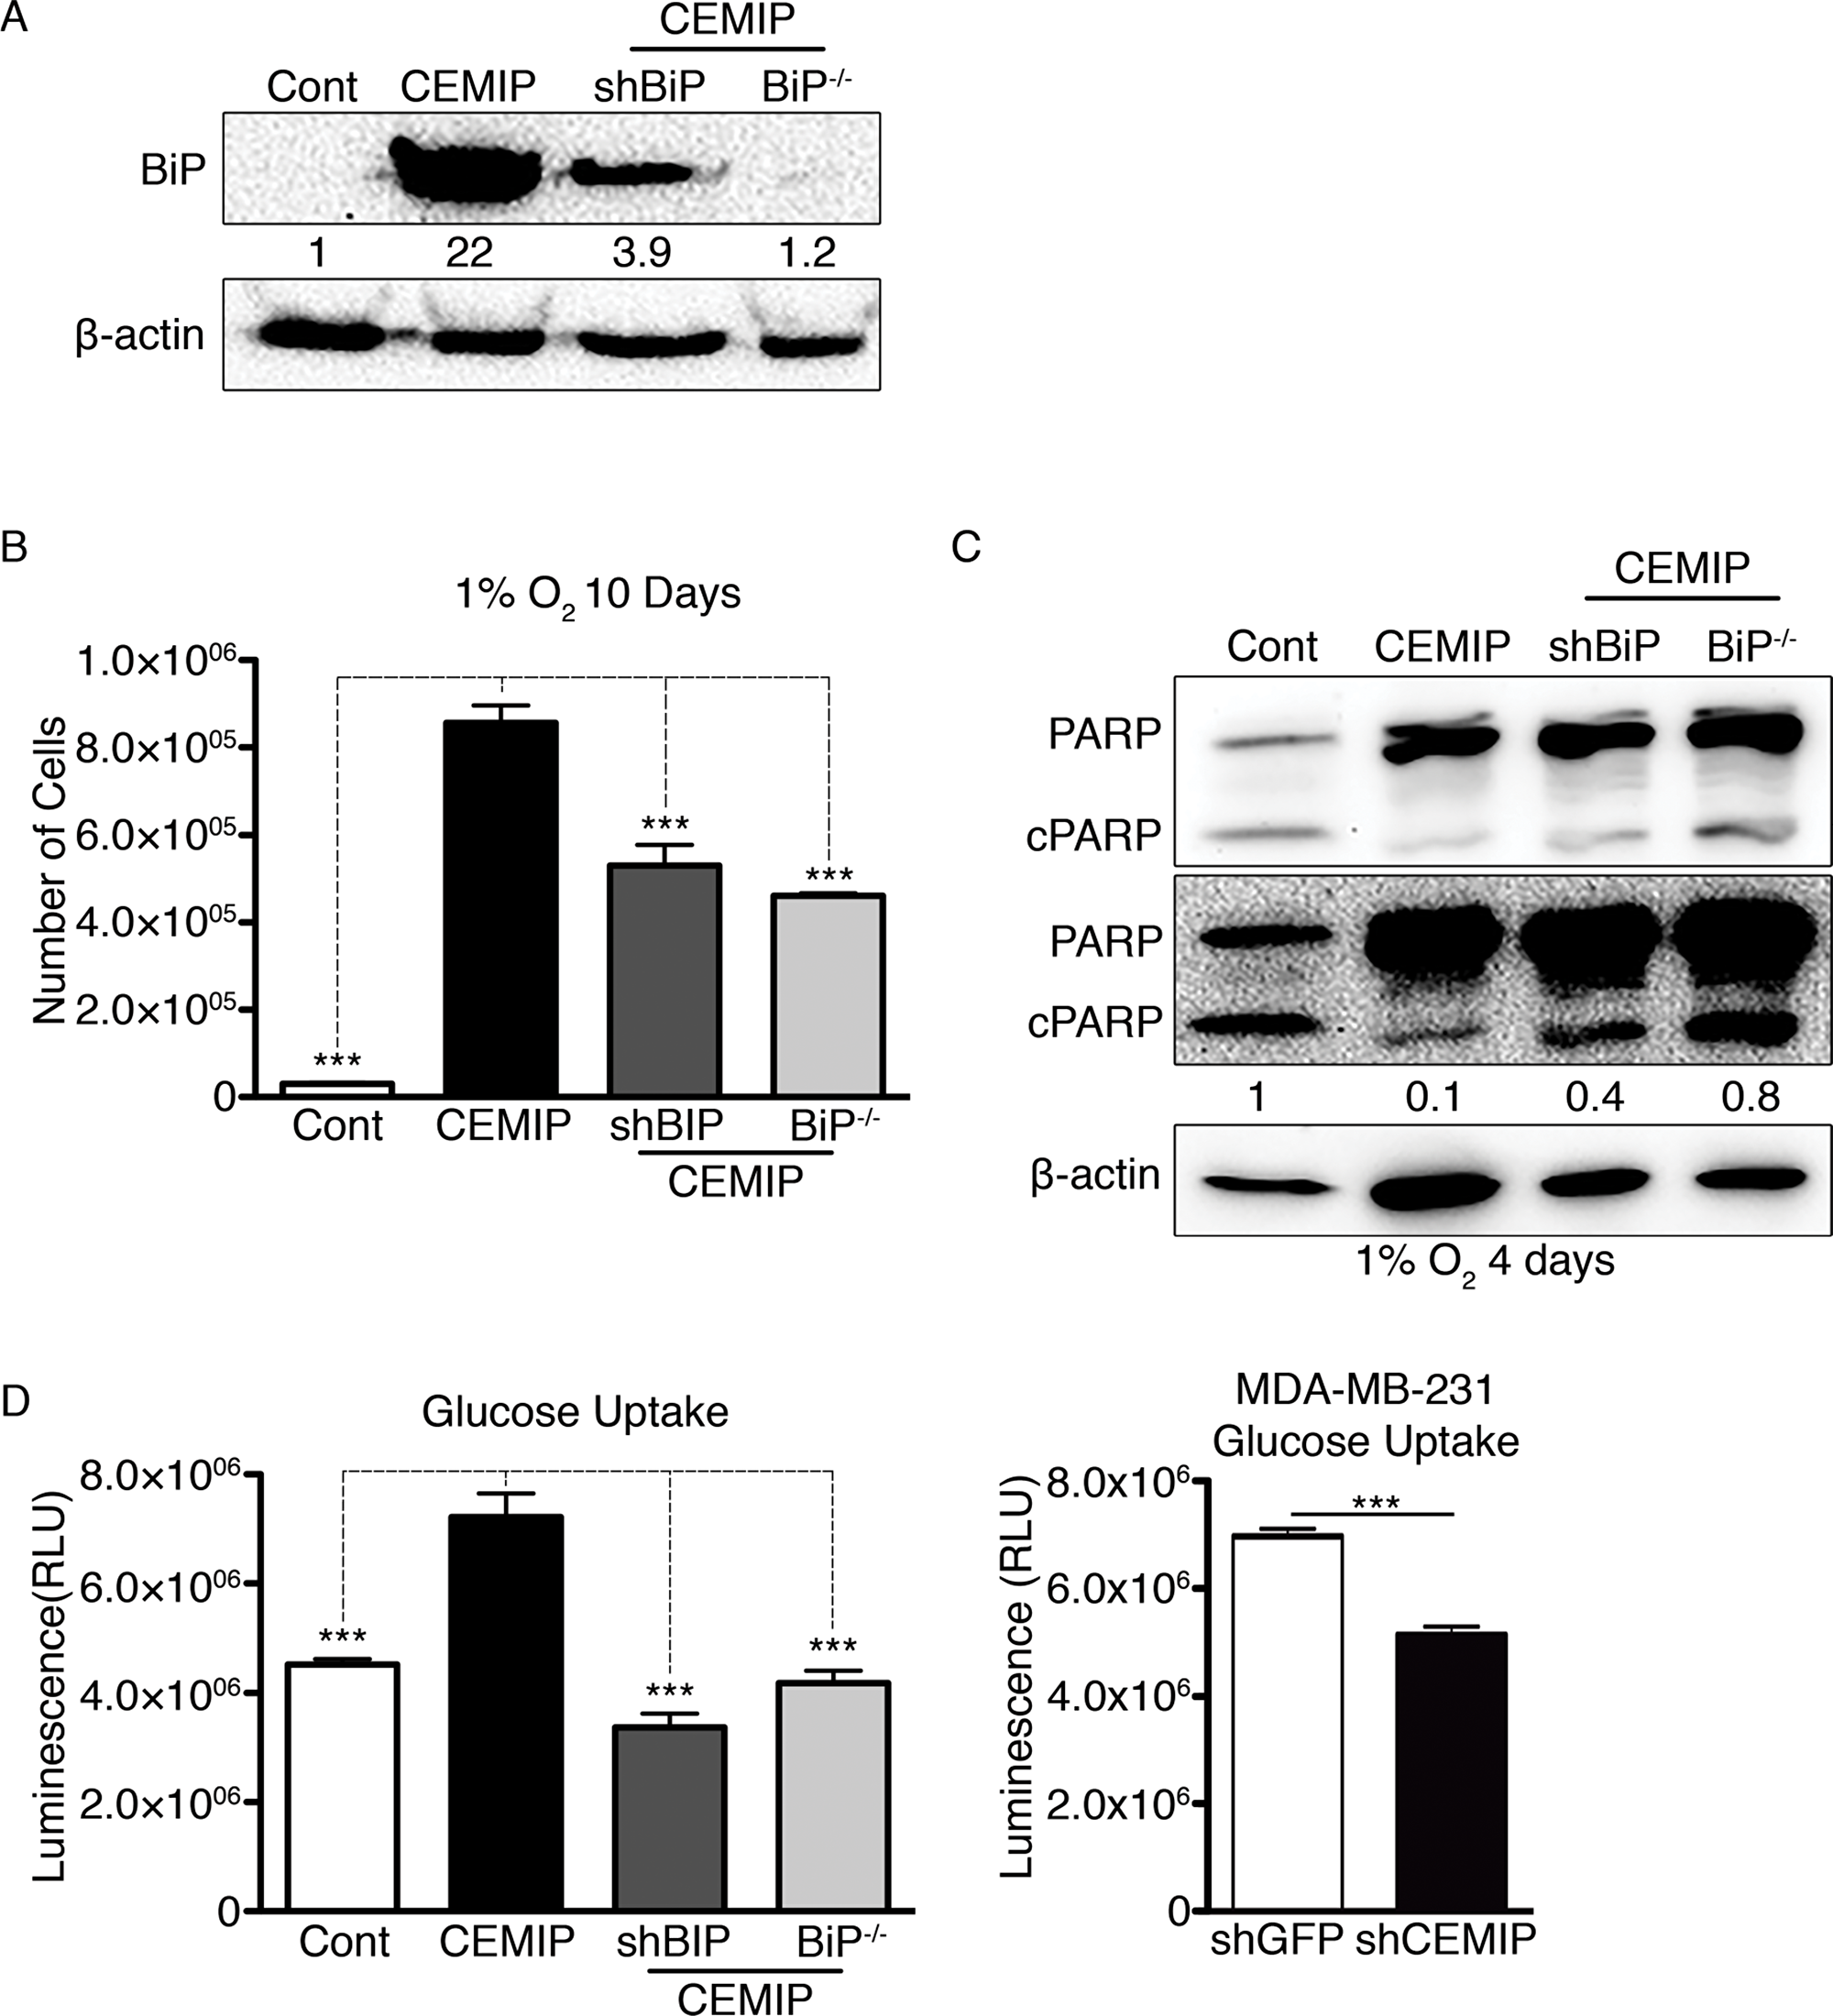 Upregulation of BiP contributes to CEMIP-mediated cell survival in hypoxic conditions and increased glucose uptake.